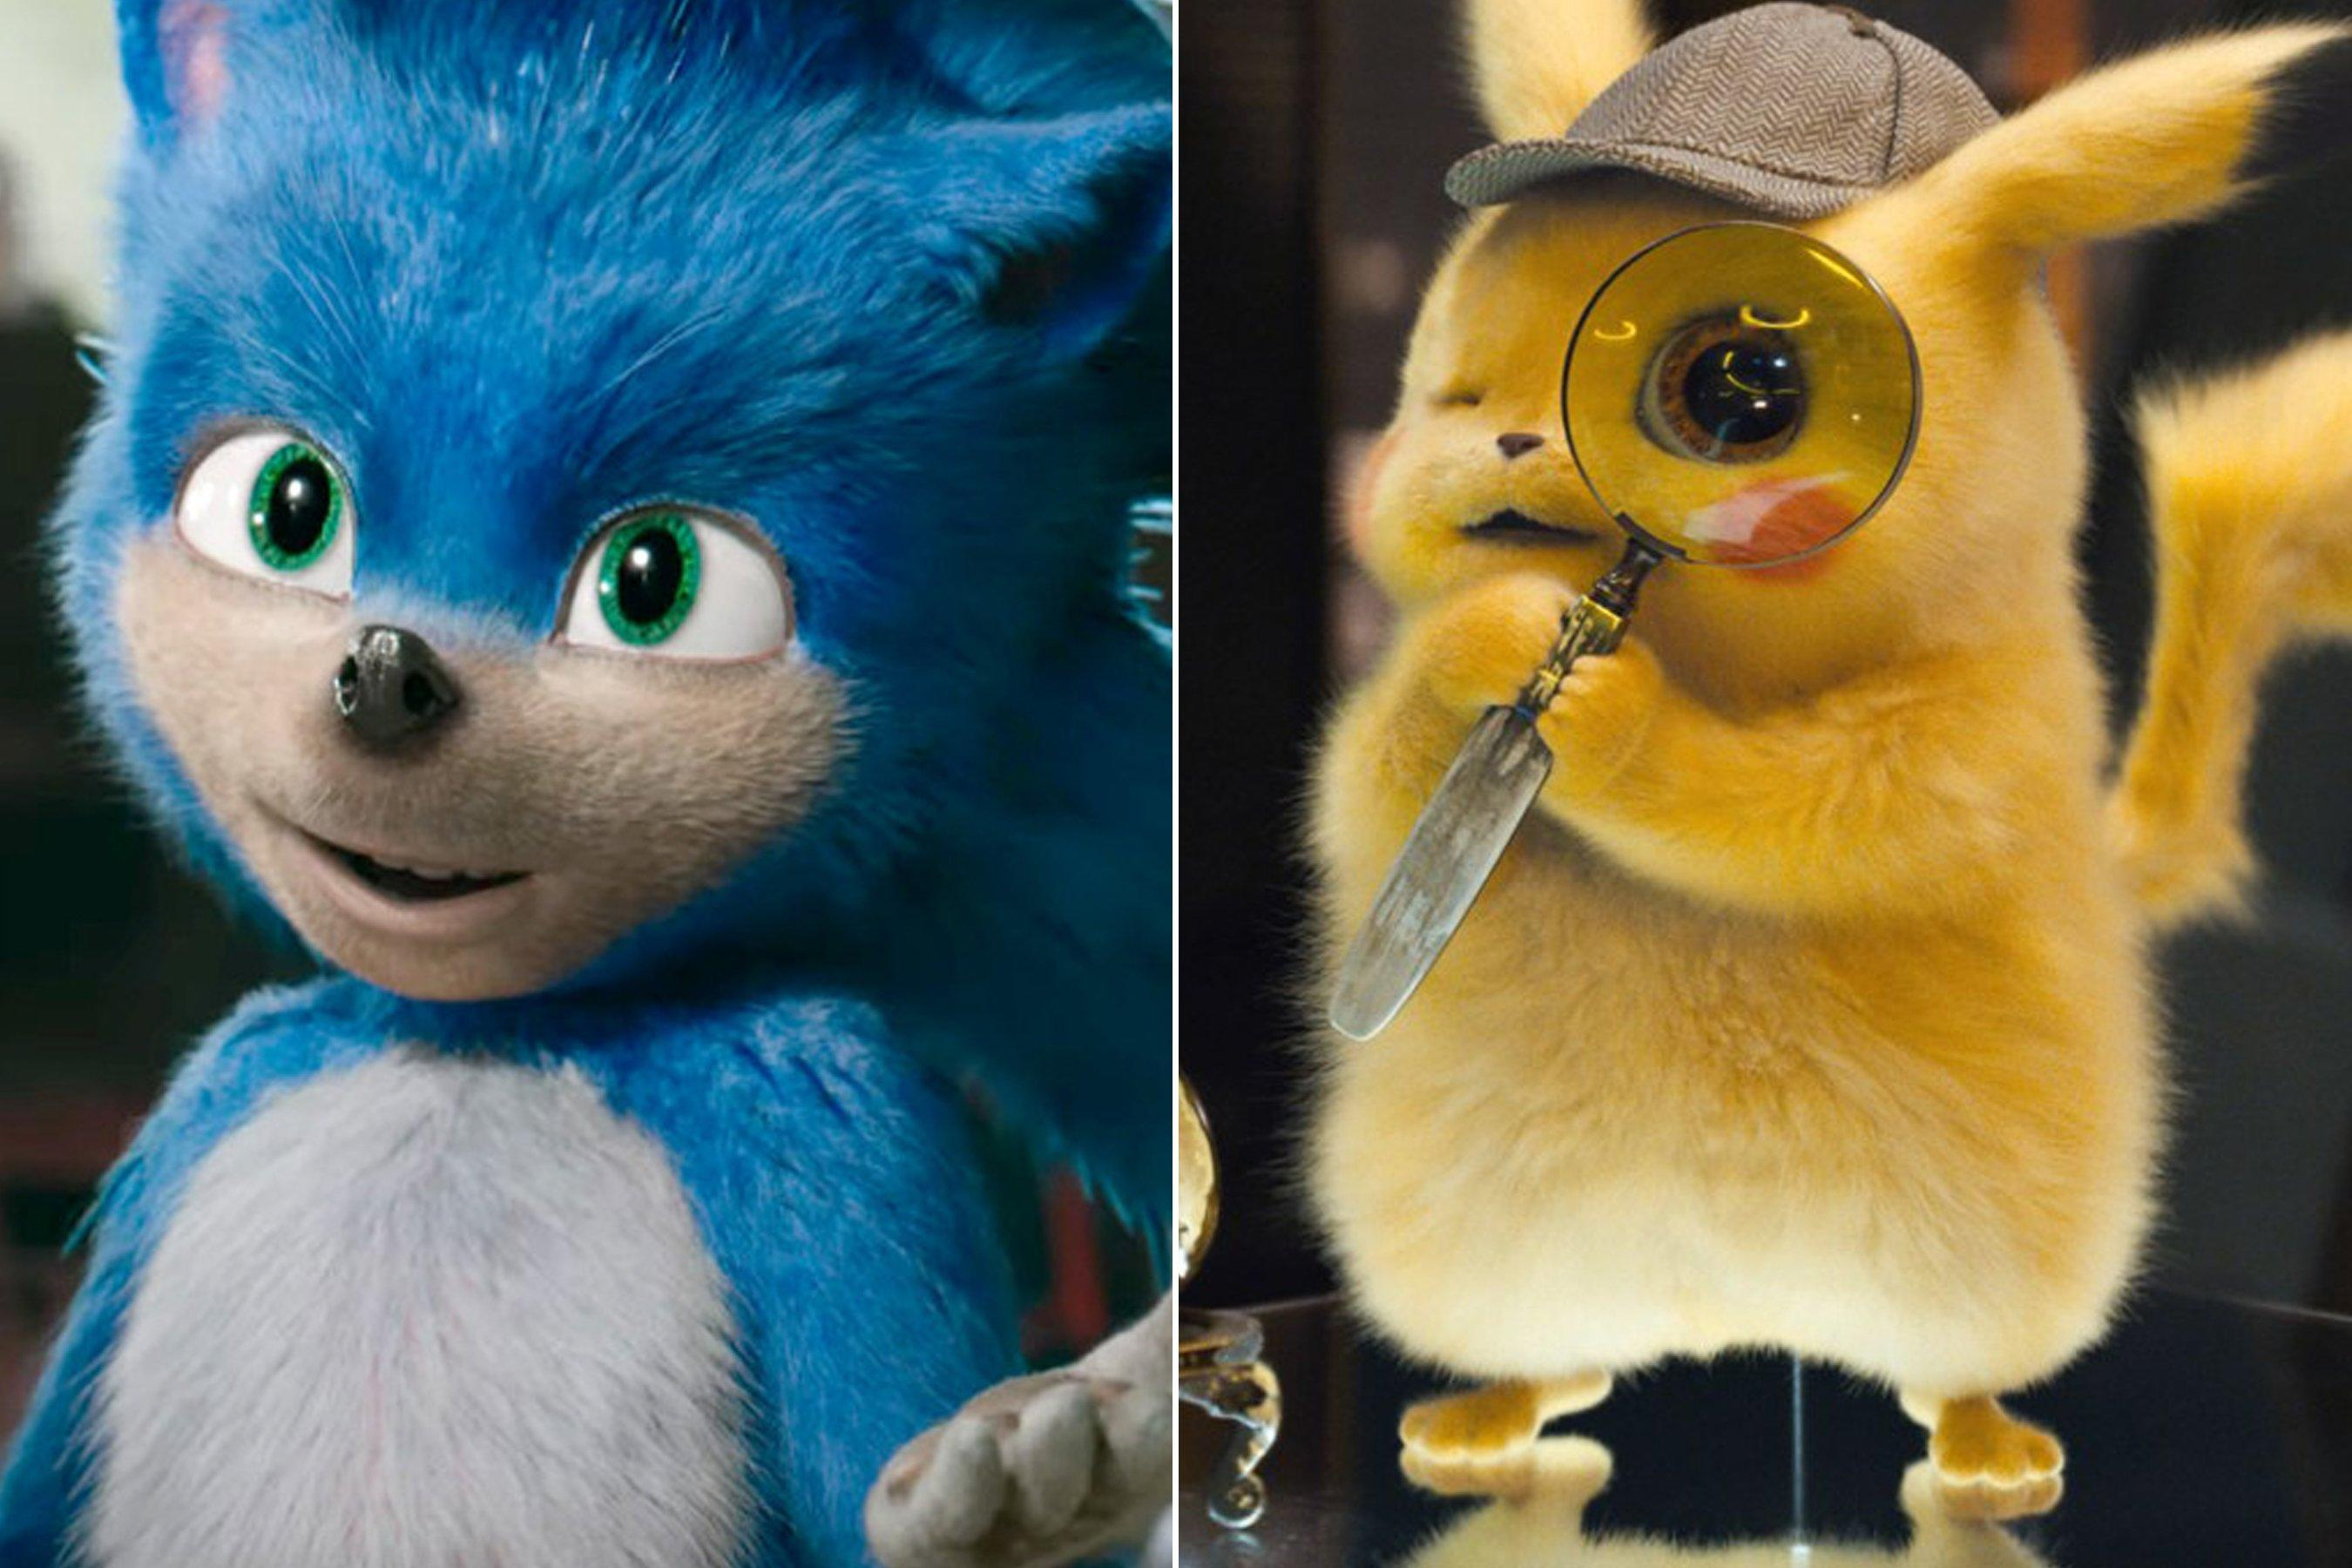 Creepy Or Cute Let S Compare Sonic The Hedgehog And Detective Pikachu